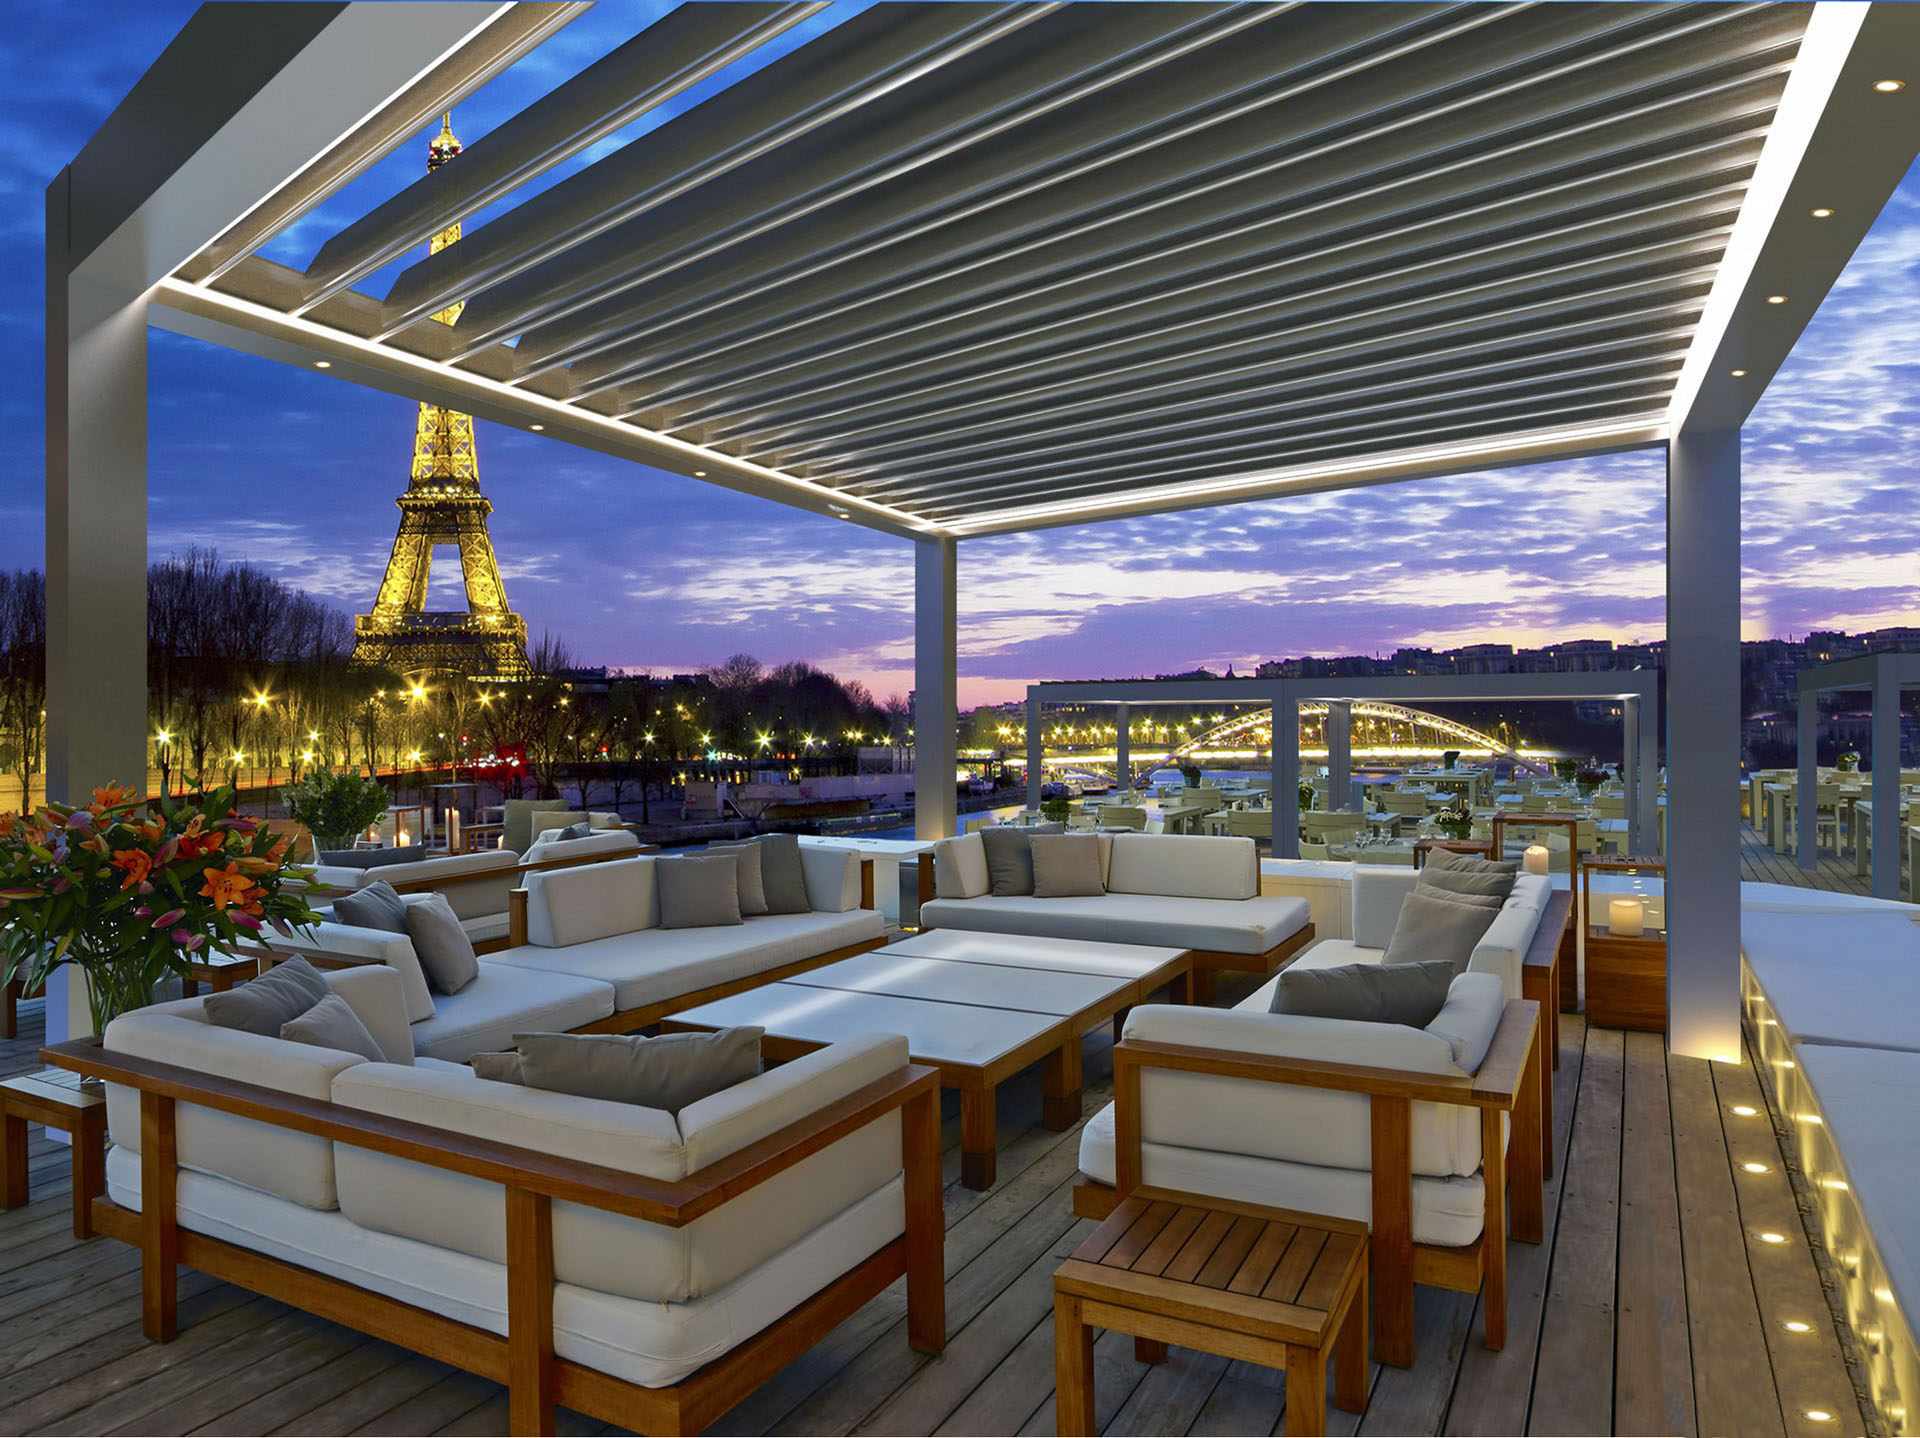 Bailly Prestige pergola paris by night